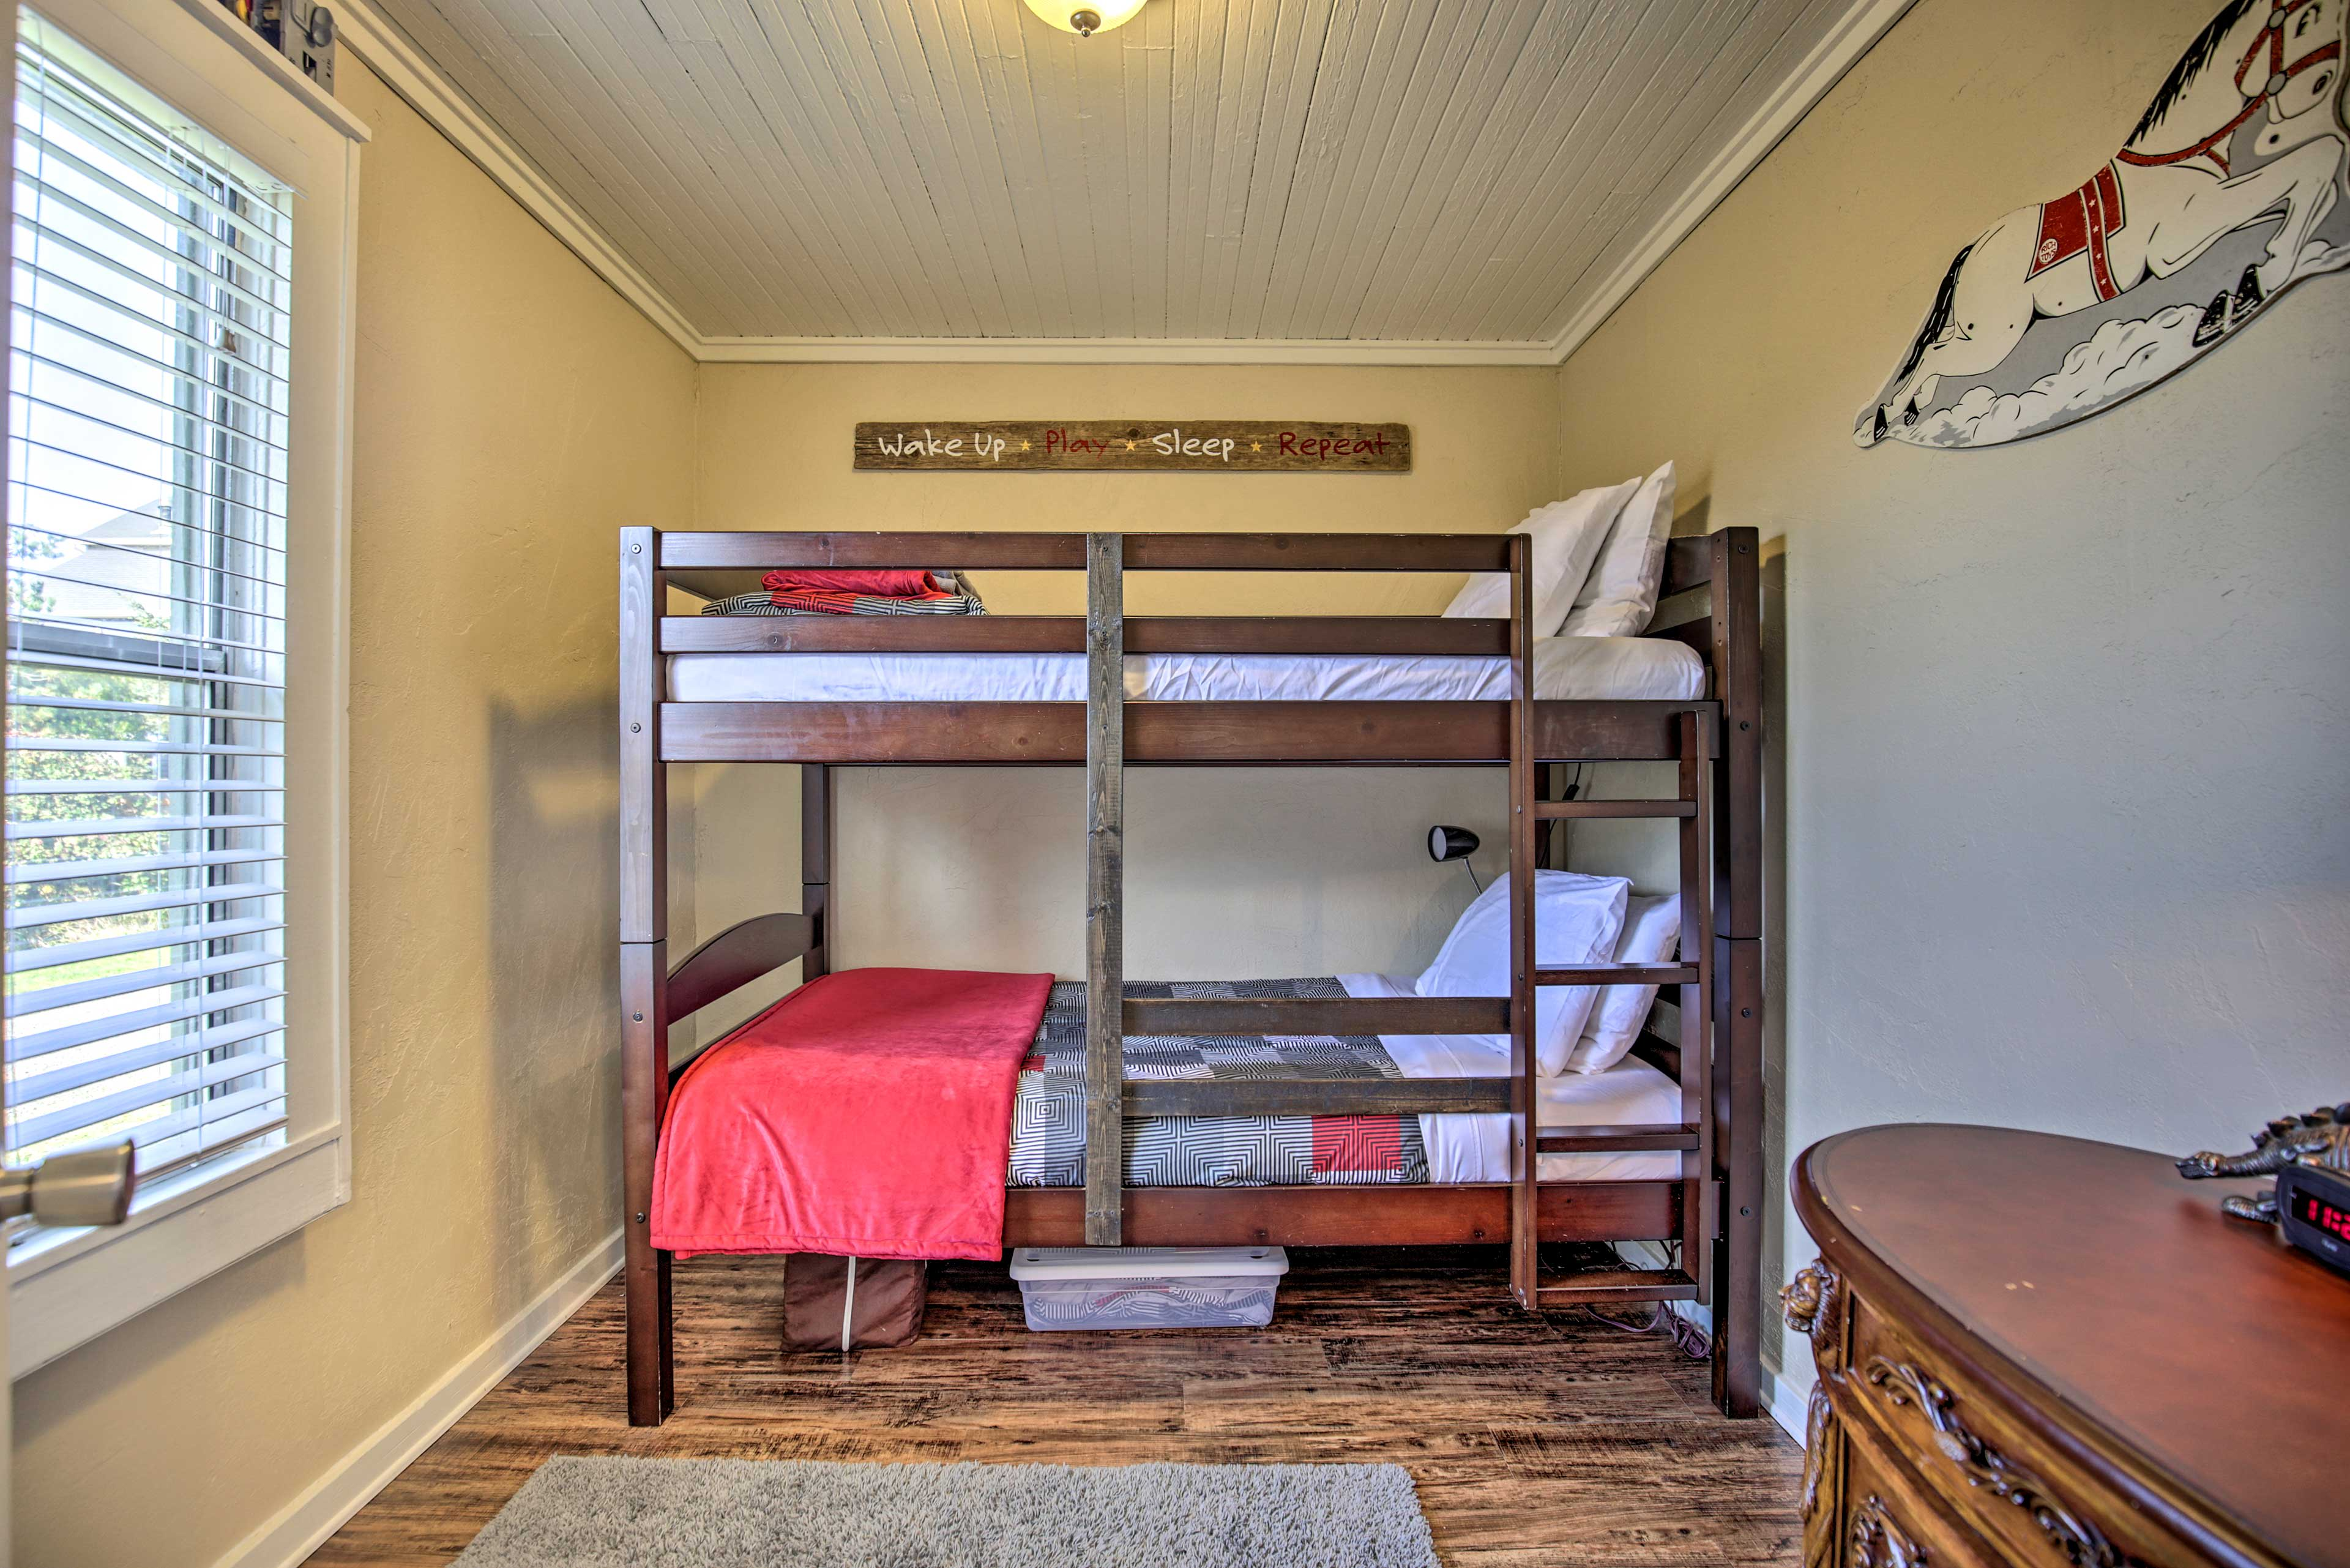 Take your pick of top of bottom bunk.